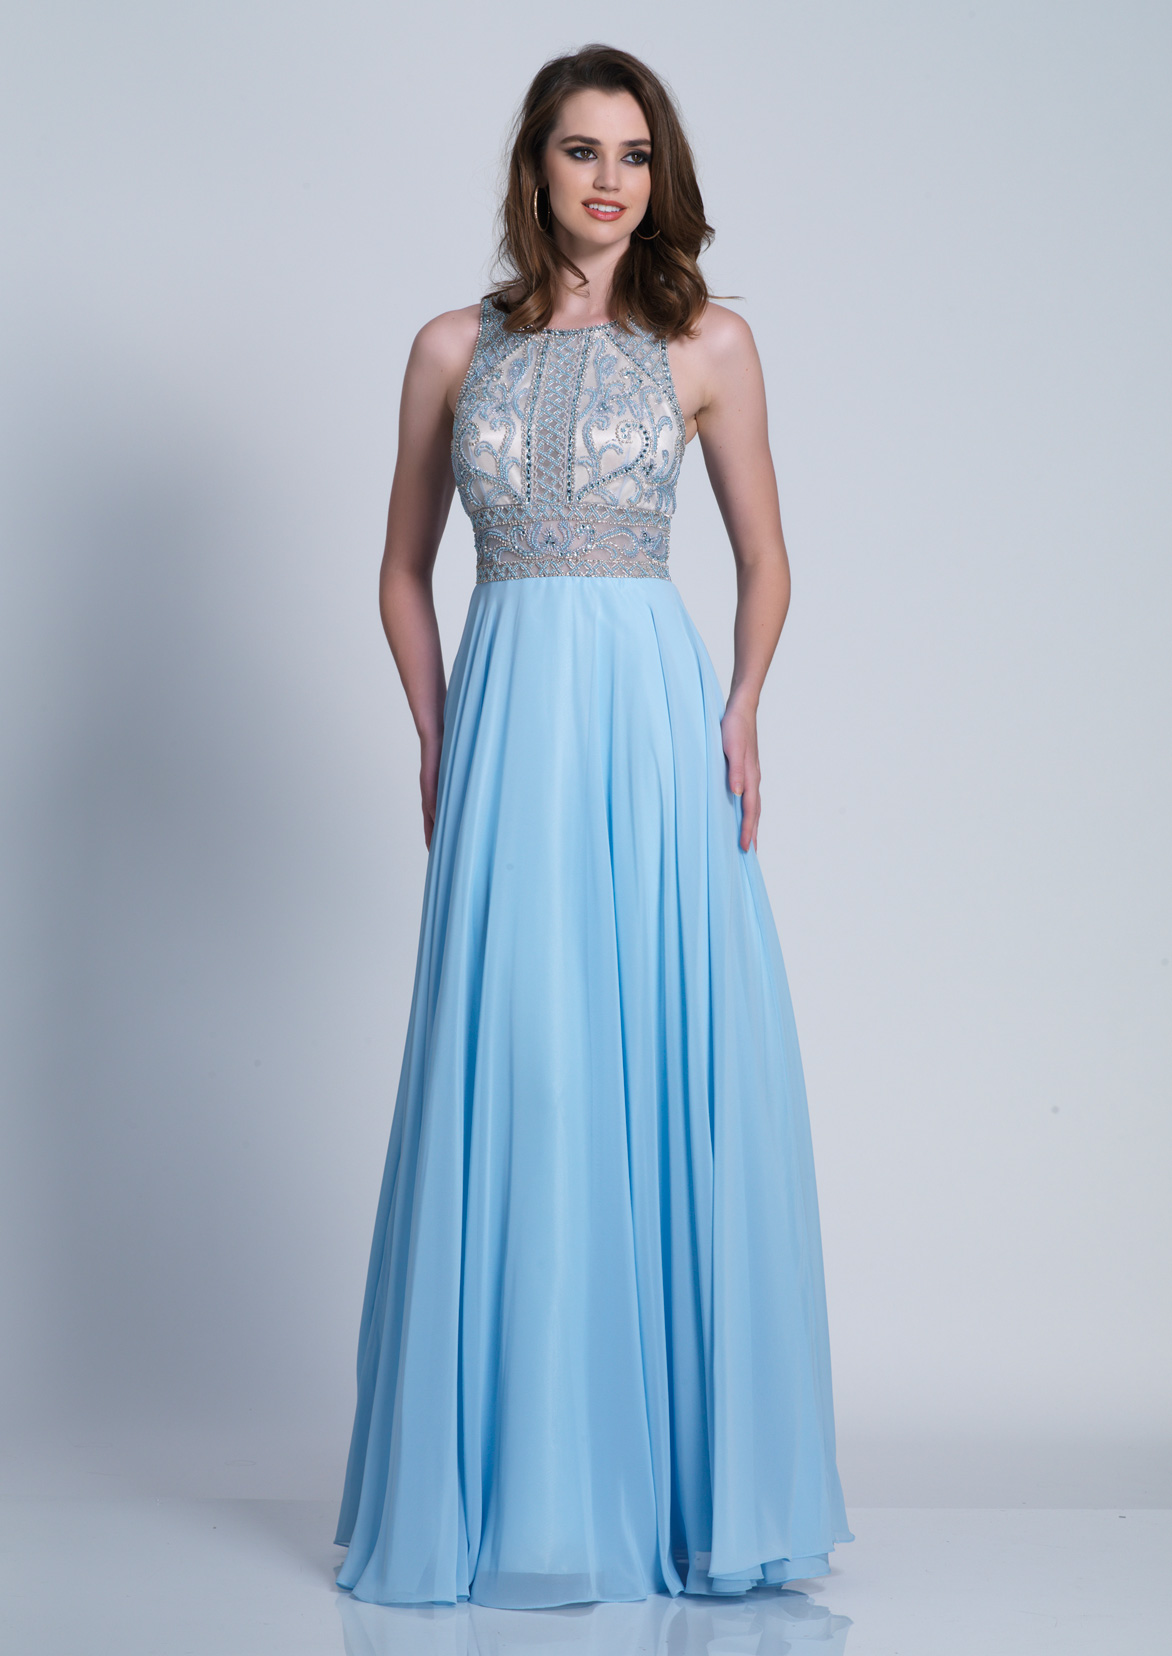 Famous Strapless Short Prom Dress By Dave & Johnny Photo - All ...